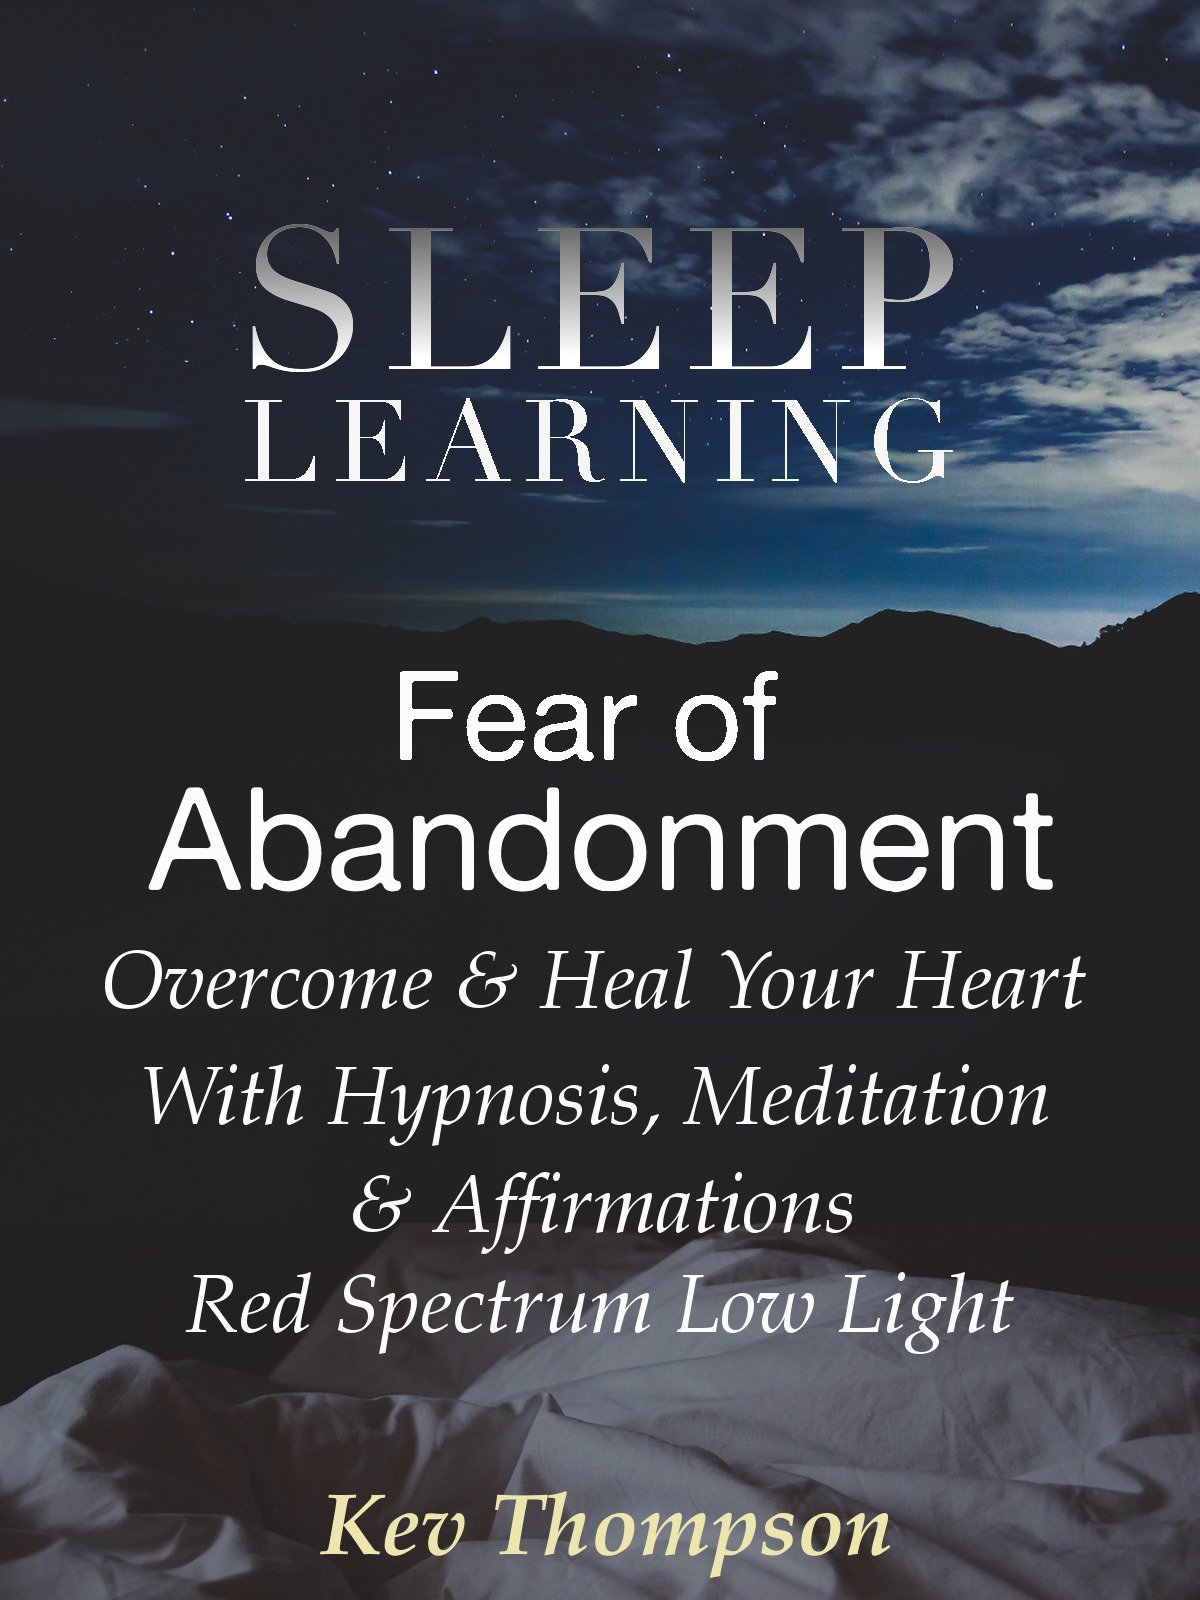 Fear of Abandonment, Overcome & Heal Your Heart With Hypnosis, Meditation & Affirmations, Red Spectrum Low Light